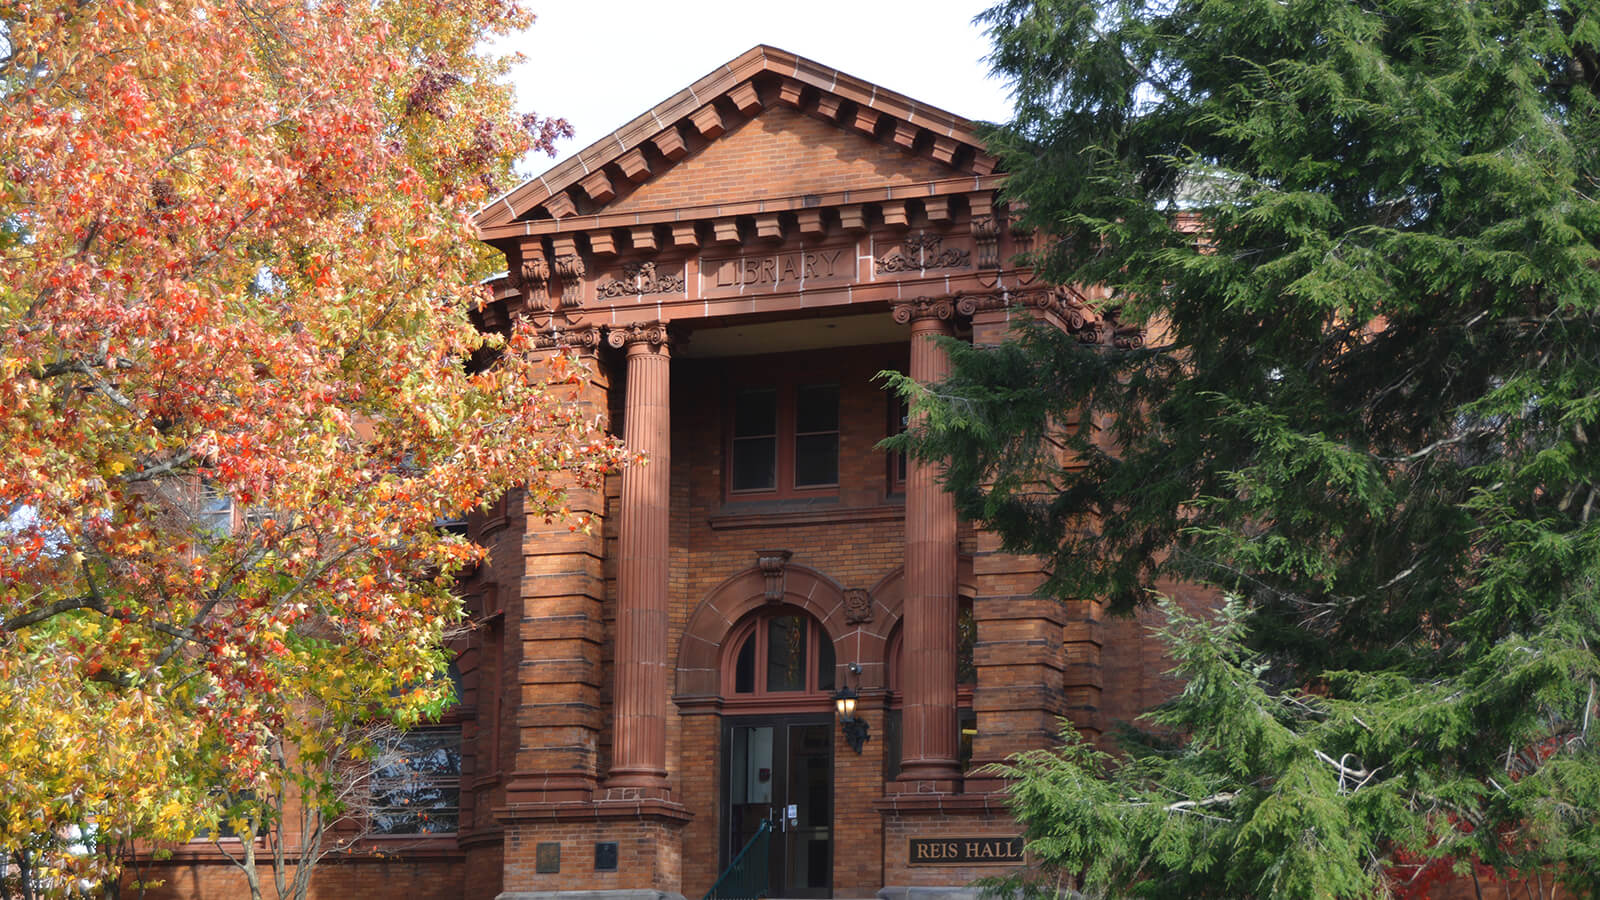 A picture of a building on Allegheny College campus.